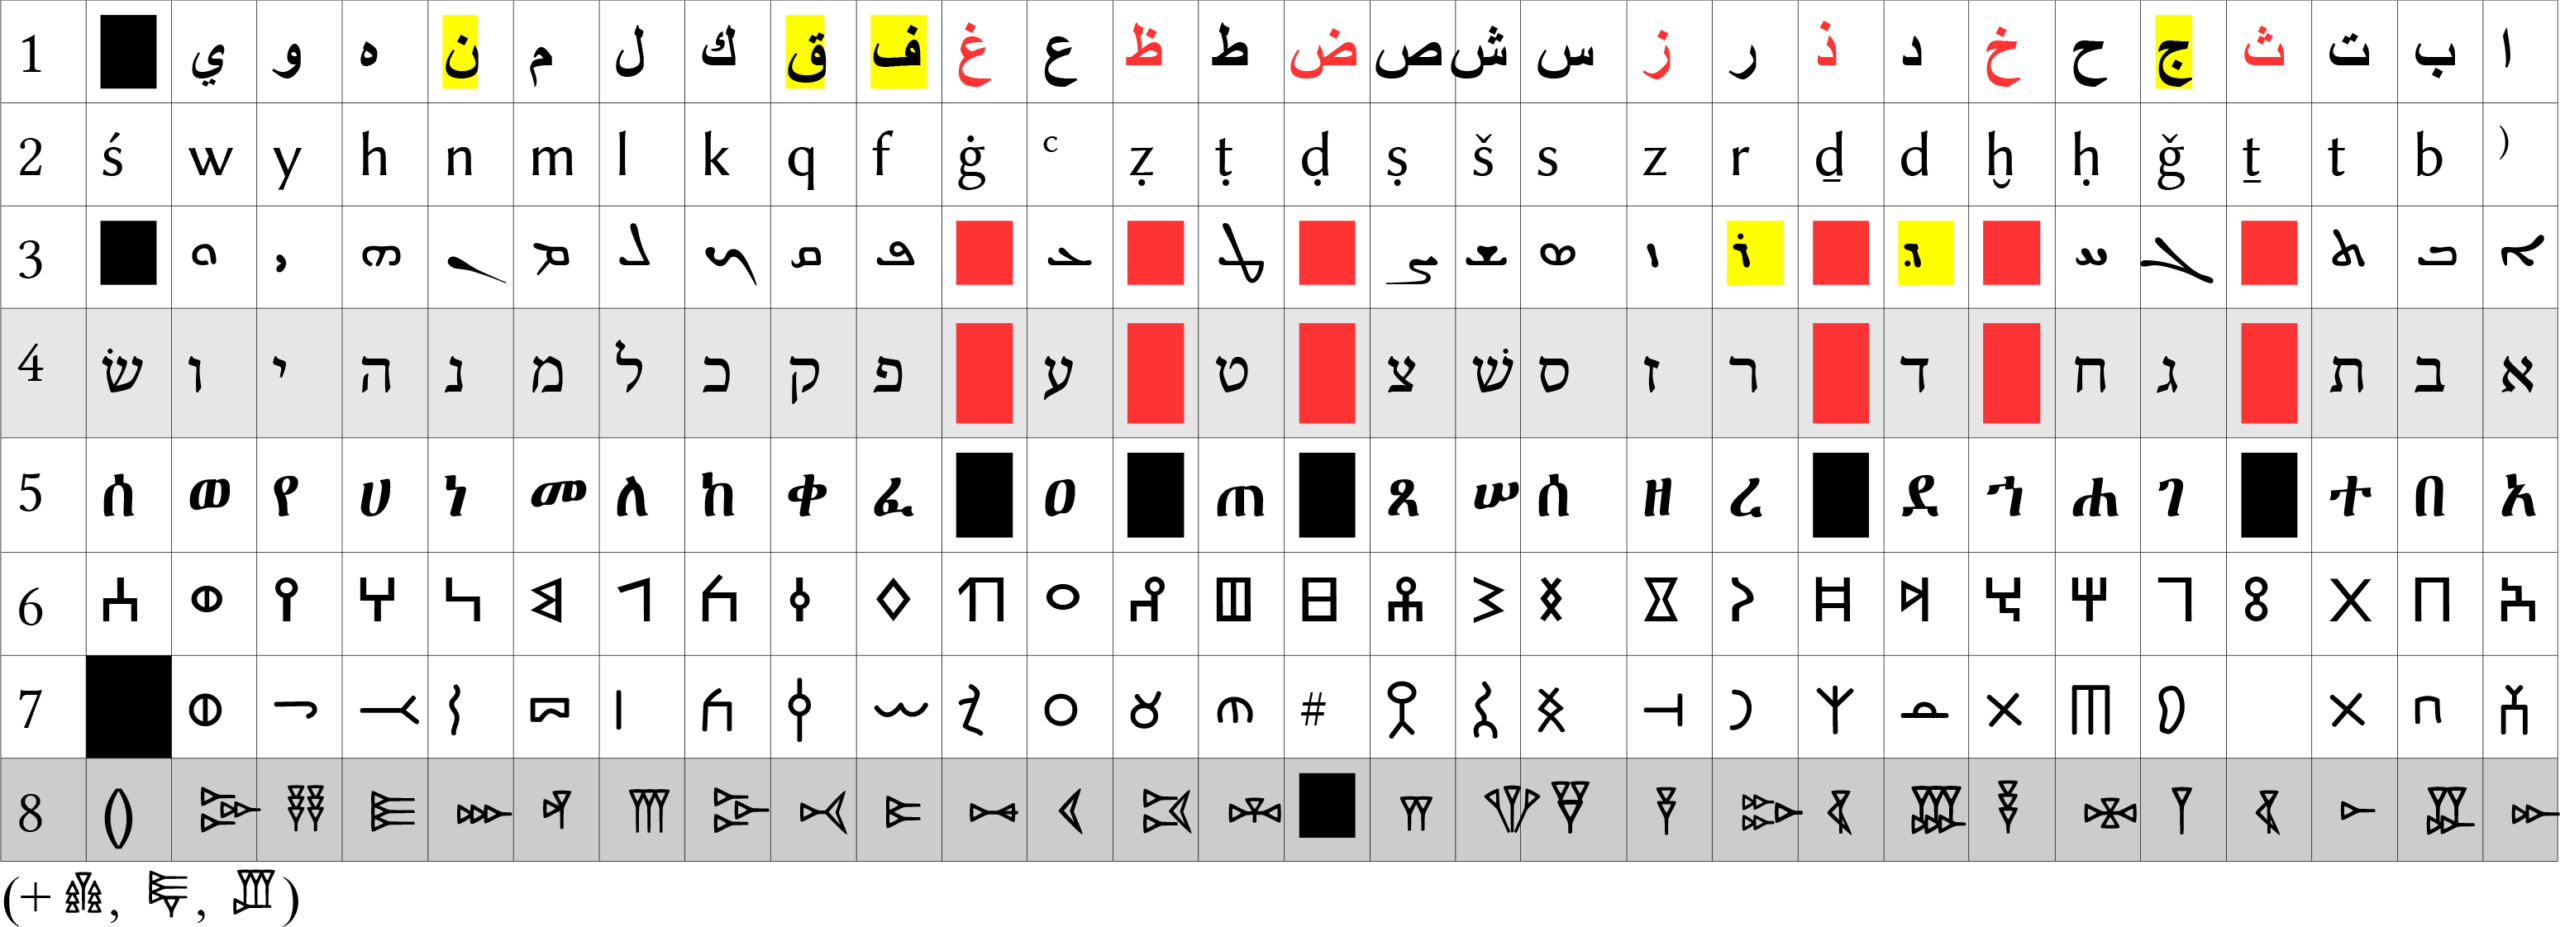 Comparative Table of Semitic Scripts